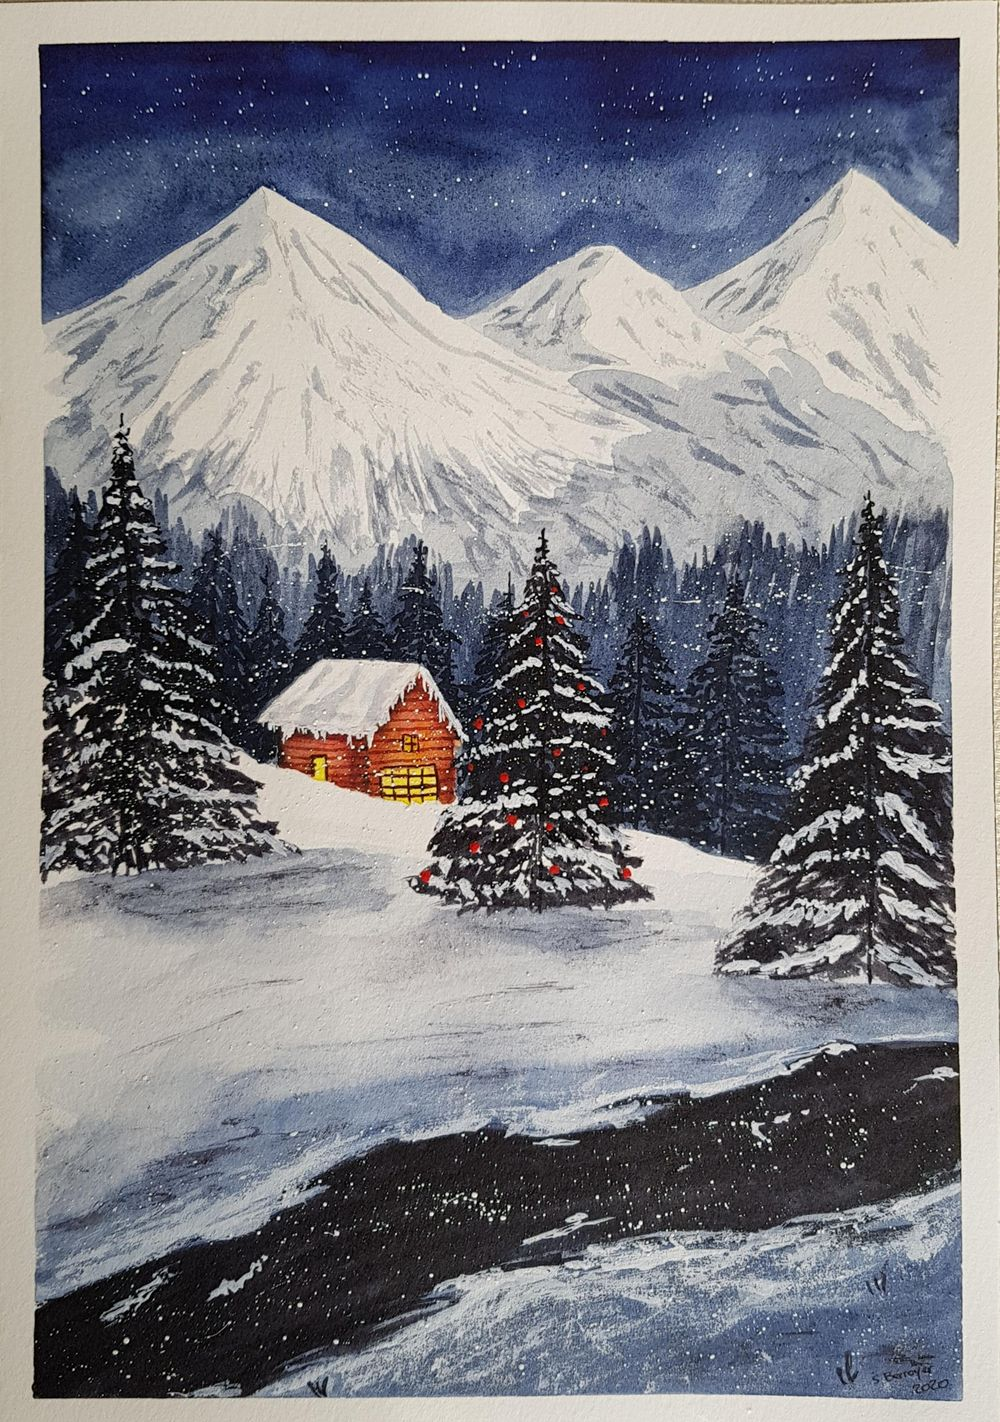 Snowy Christmas Night - image 2 - student project